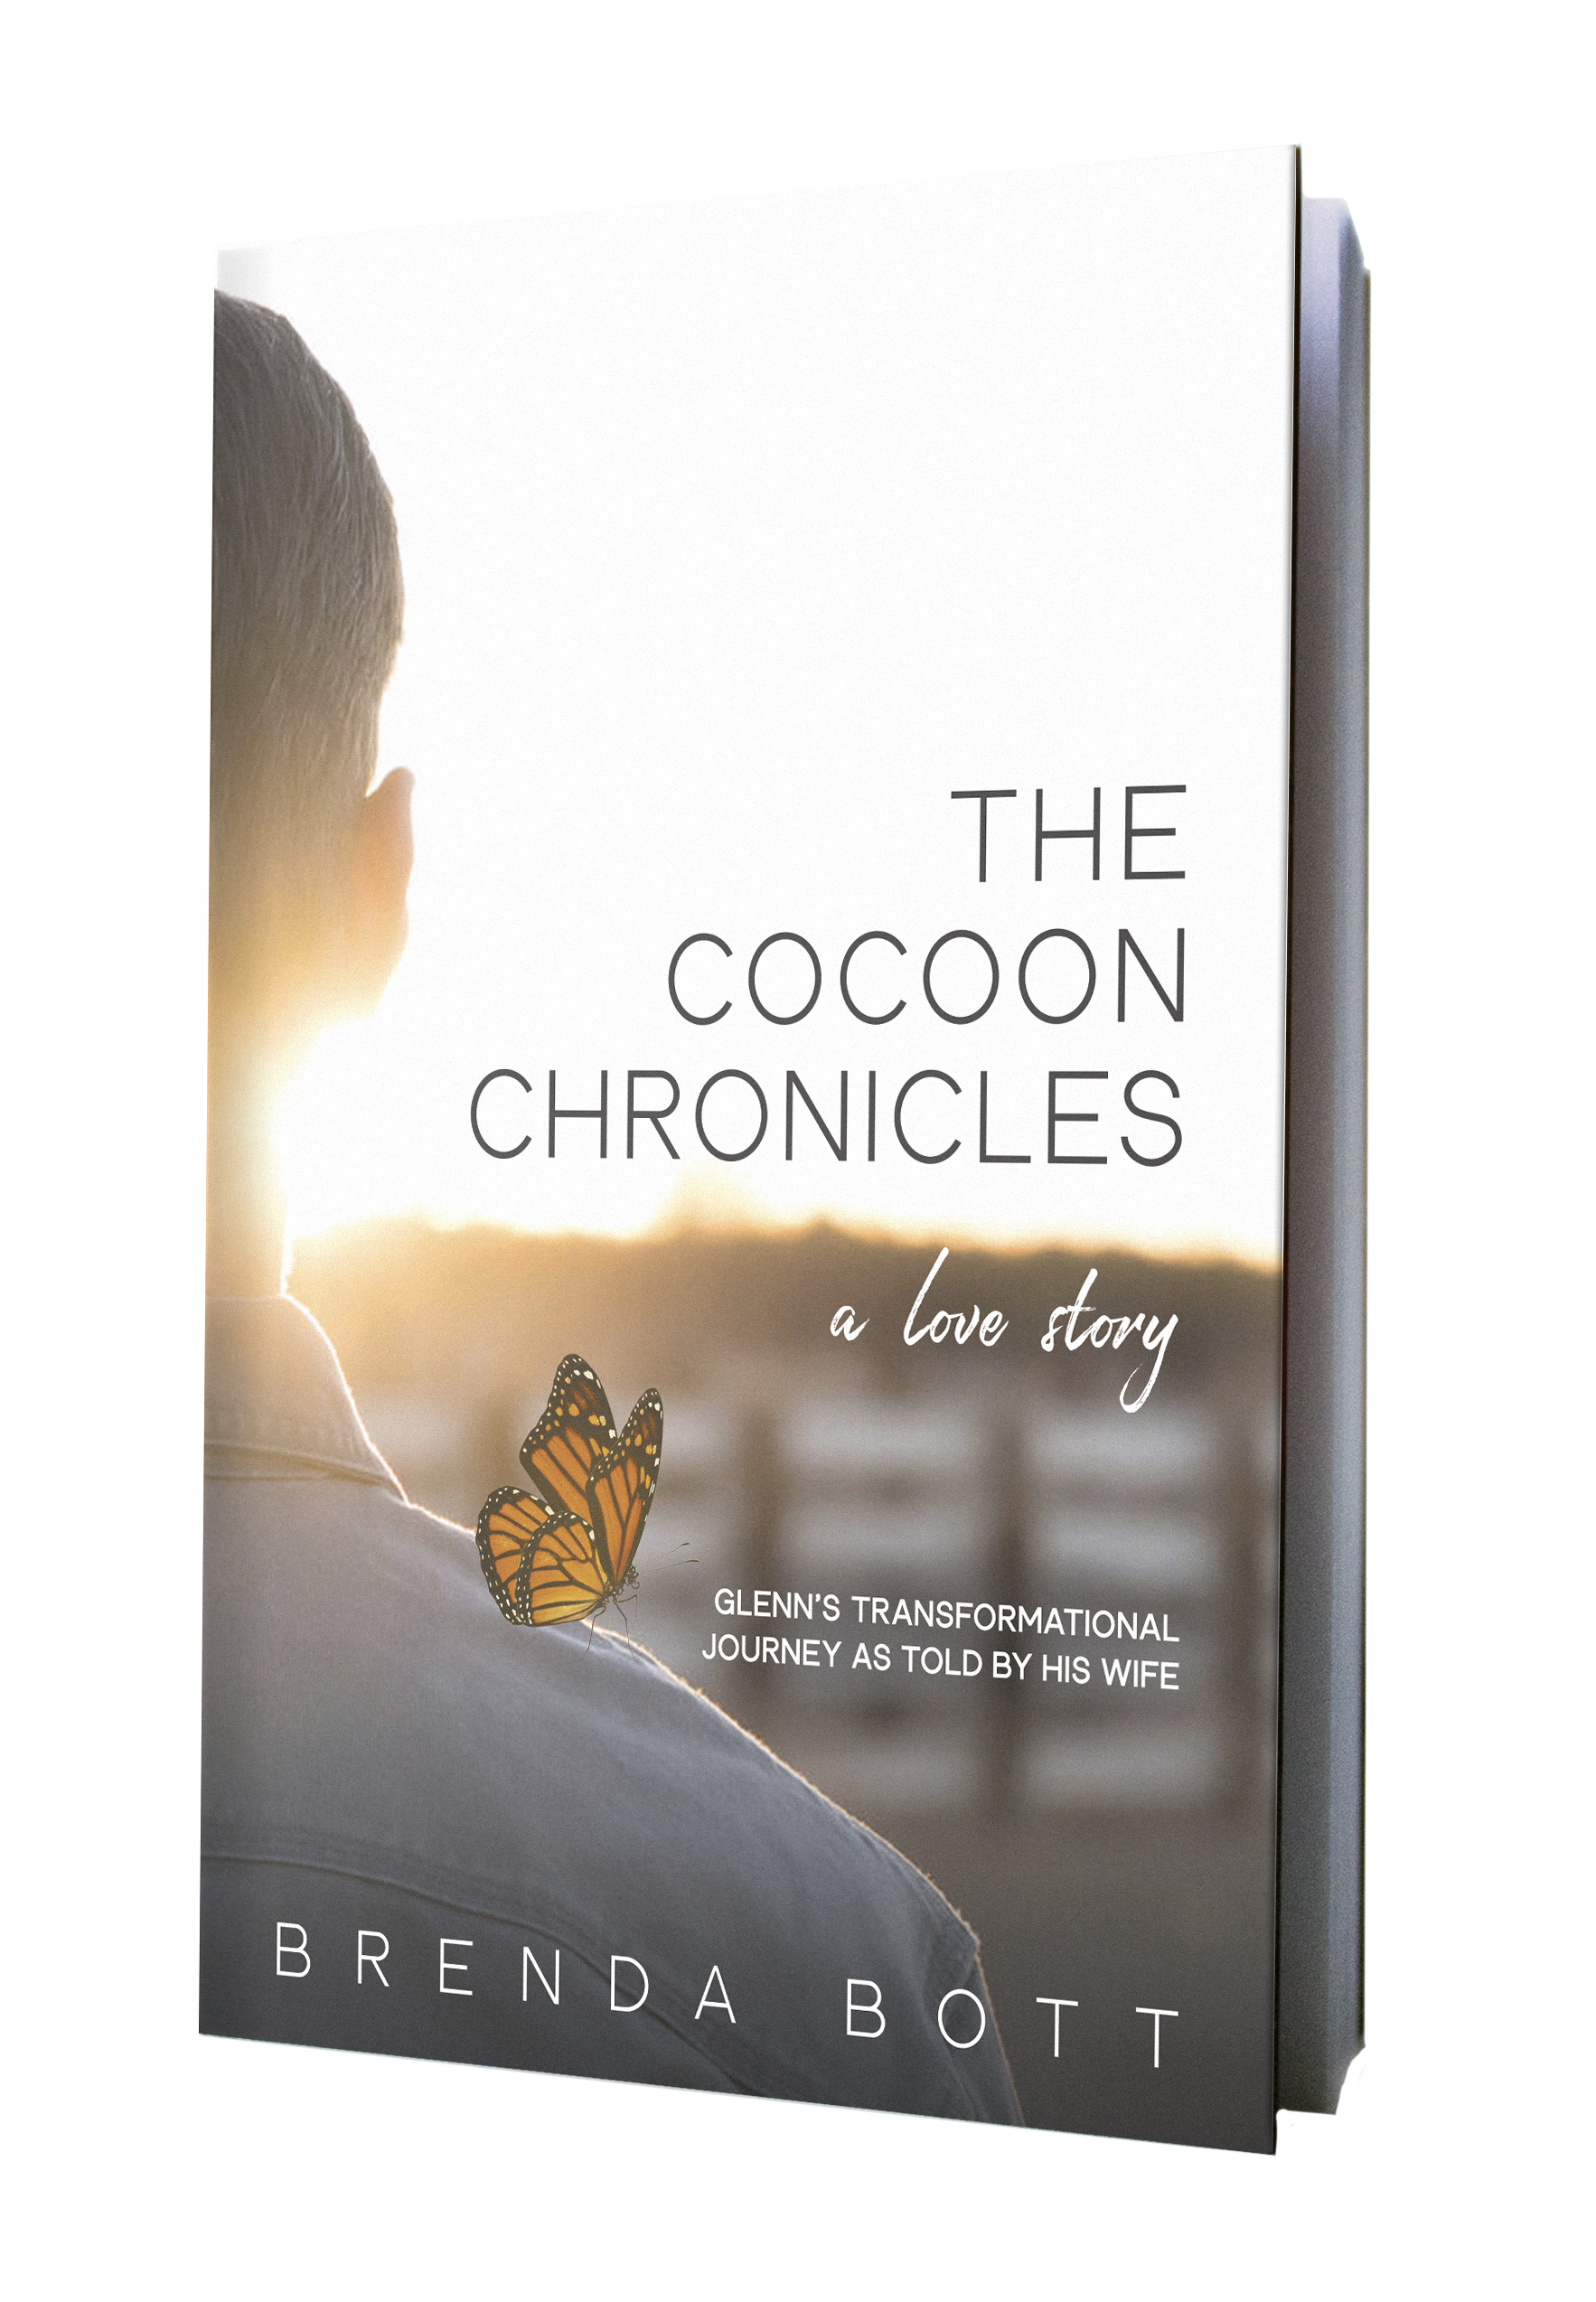 CocoonChronicles, book cover design